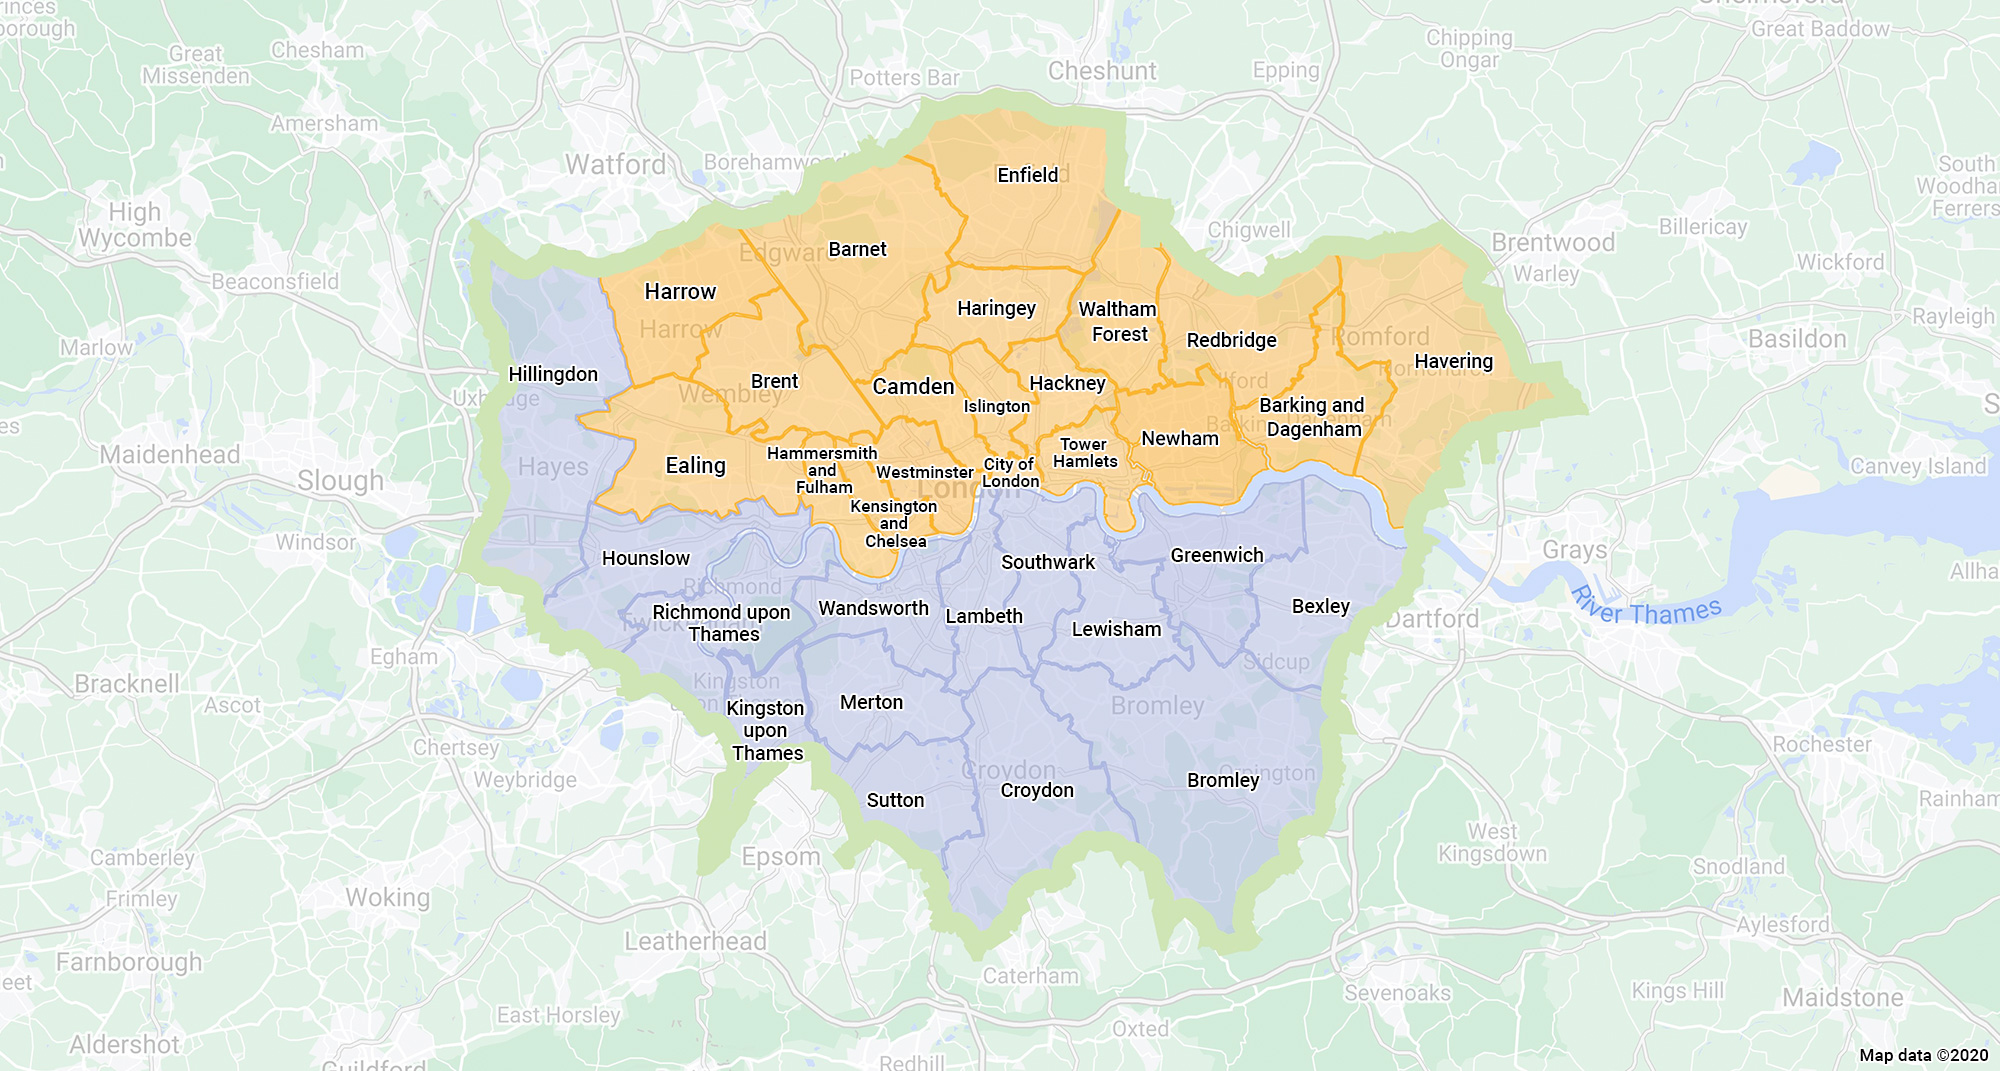 Linking London coverage area map of London boroughs